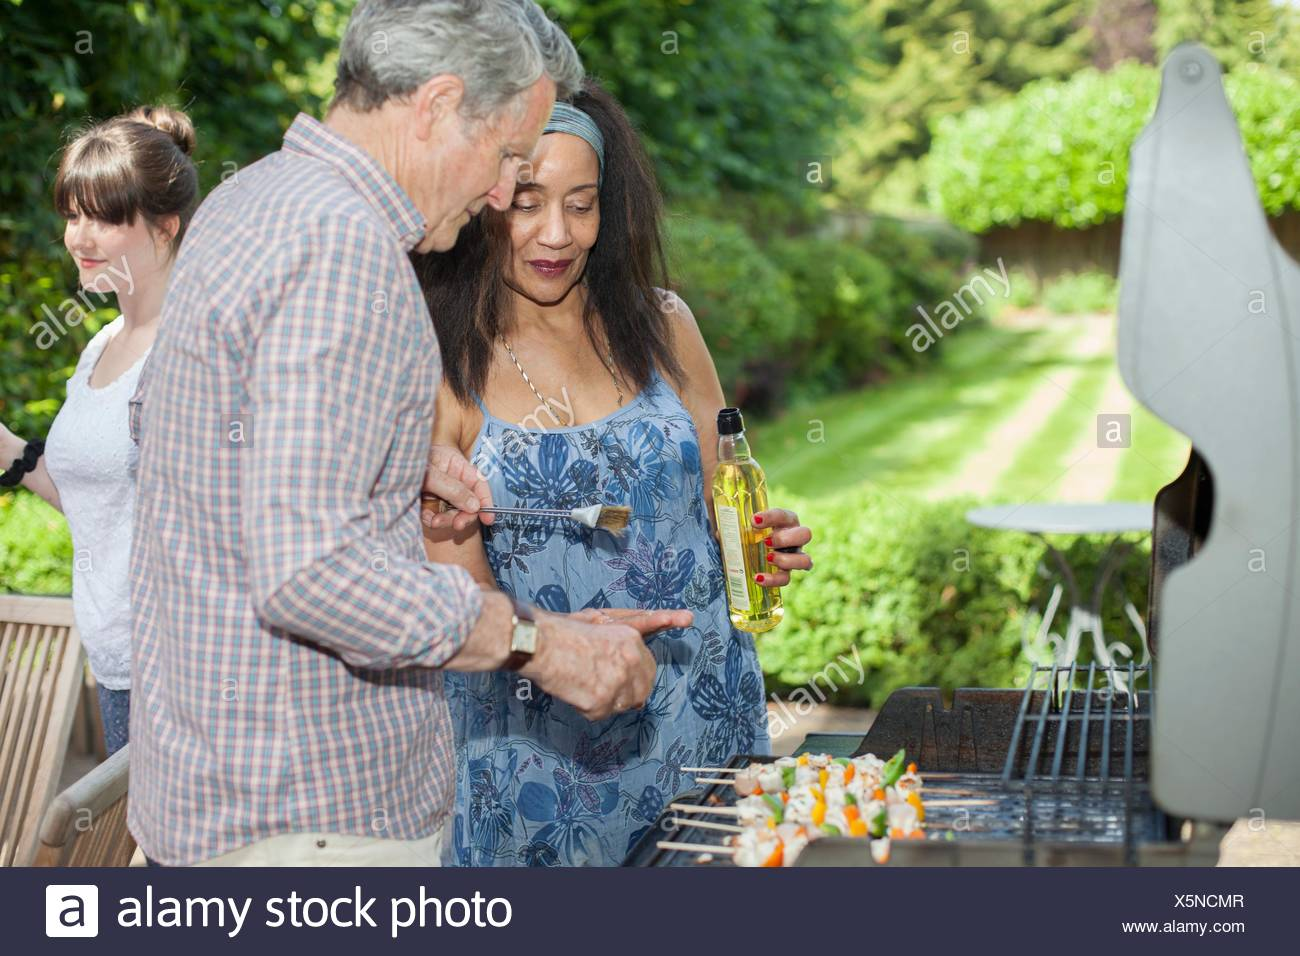 Senior couple cooking on barbecue in garden - Stock Image